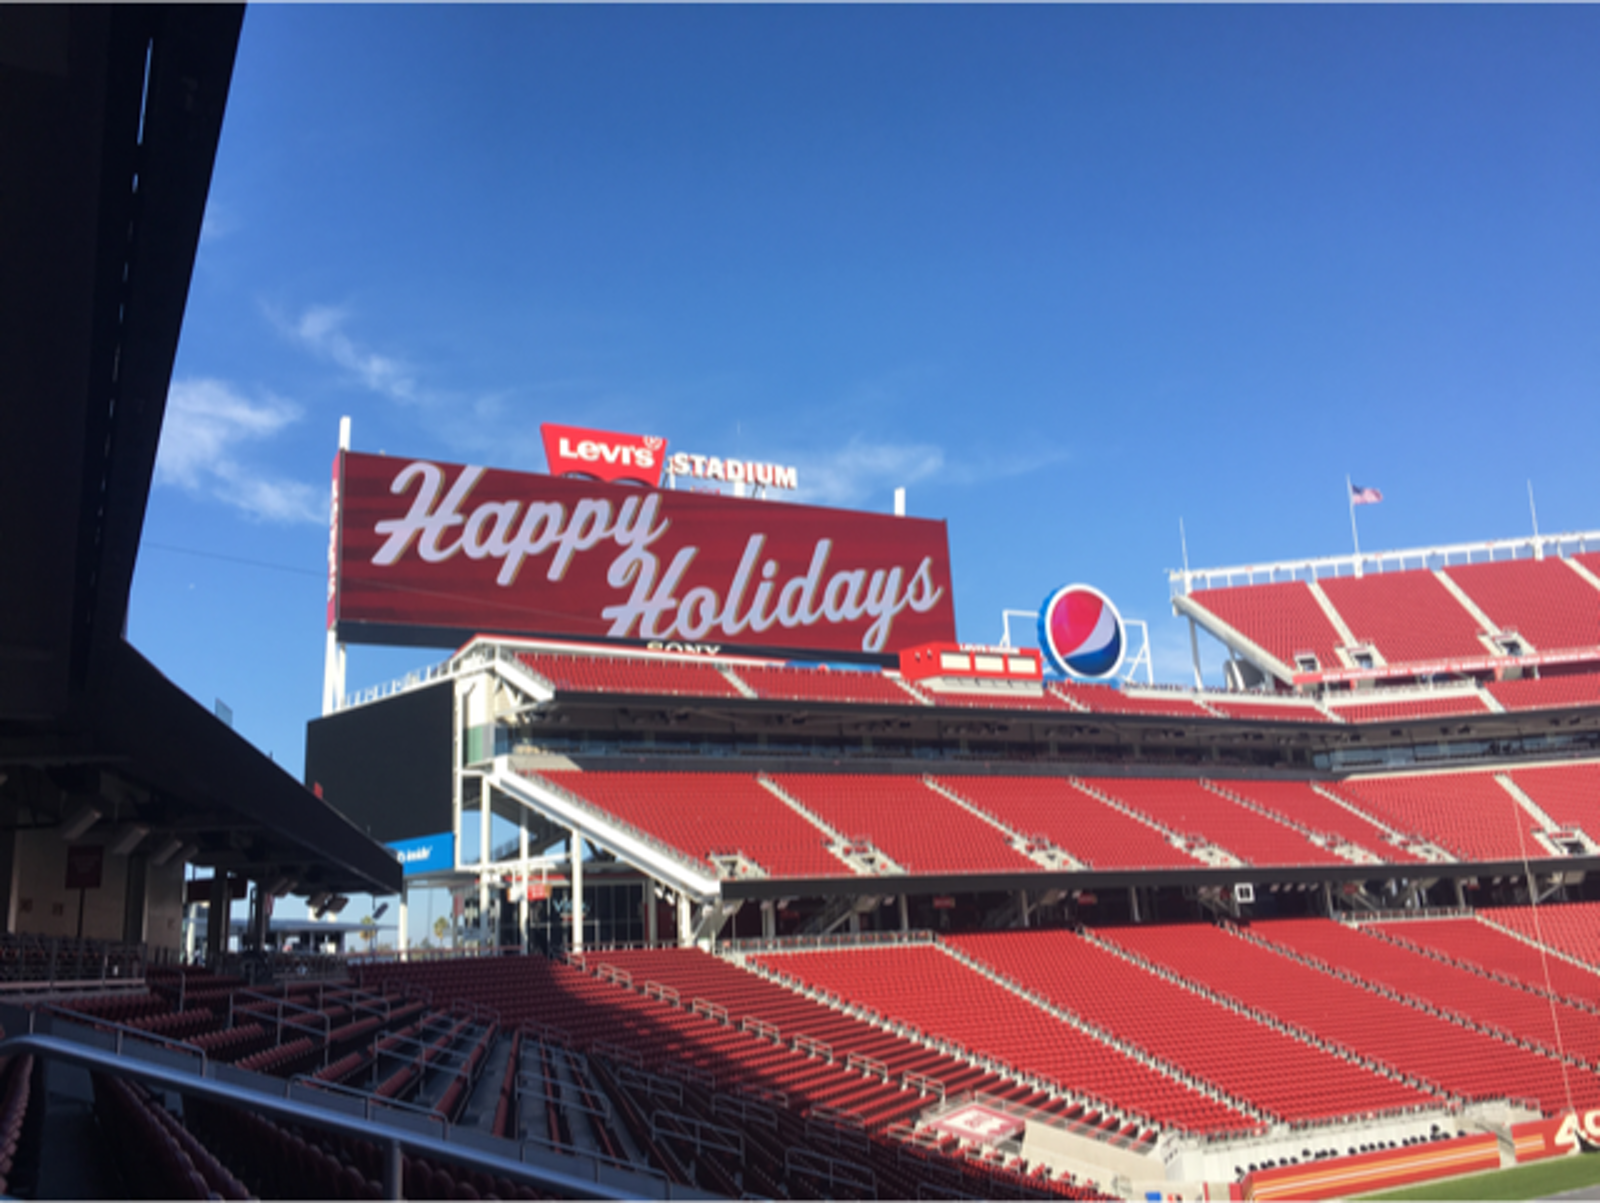 7db6384b2c4 The two screens at Levi s Stadium are the largest in the NFL